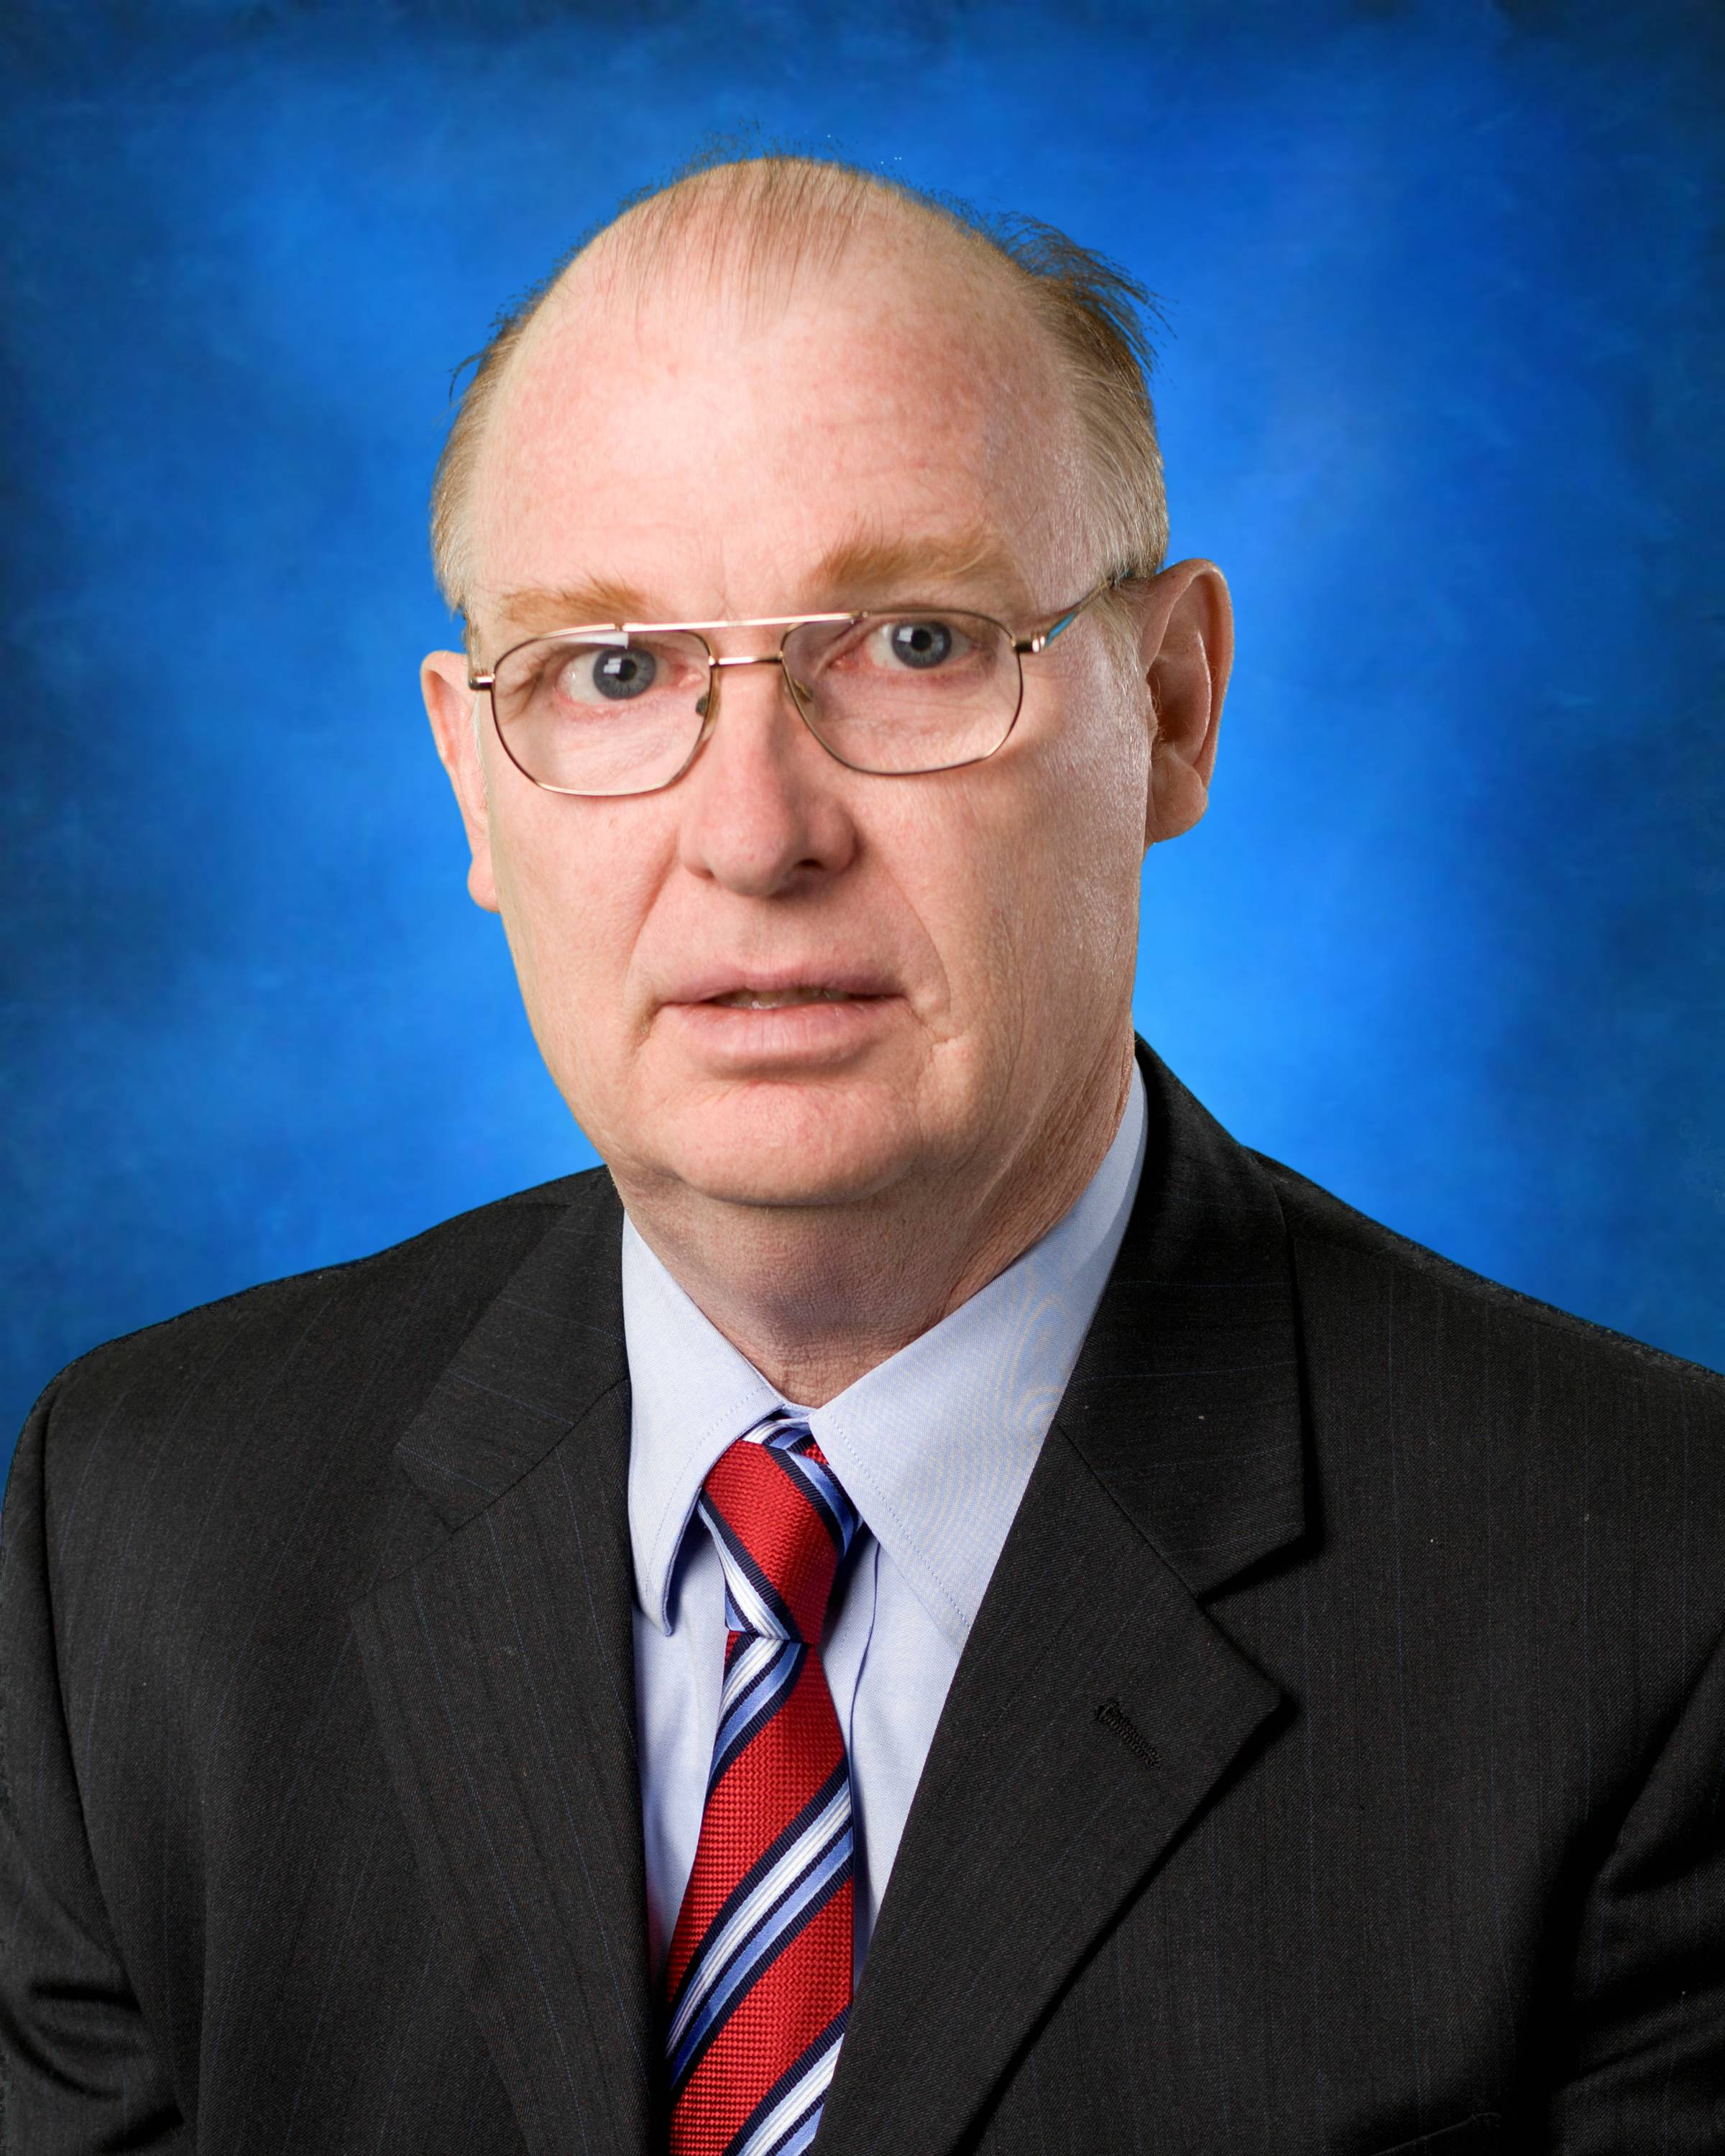 John Sharp, Ph.D. and President of Sharp Informatics